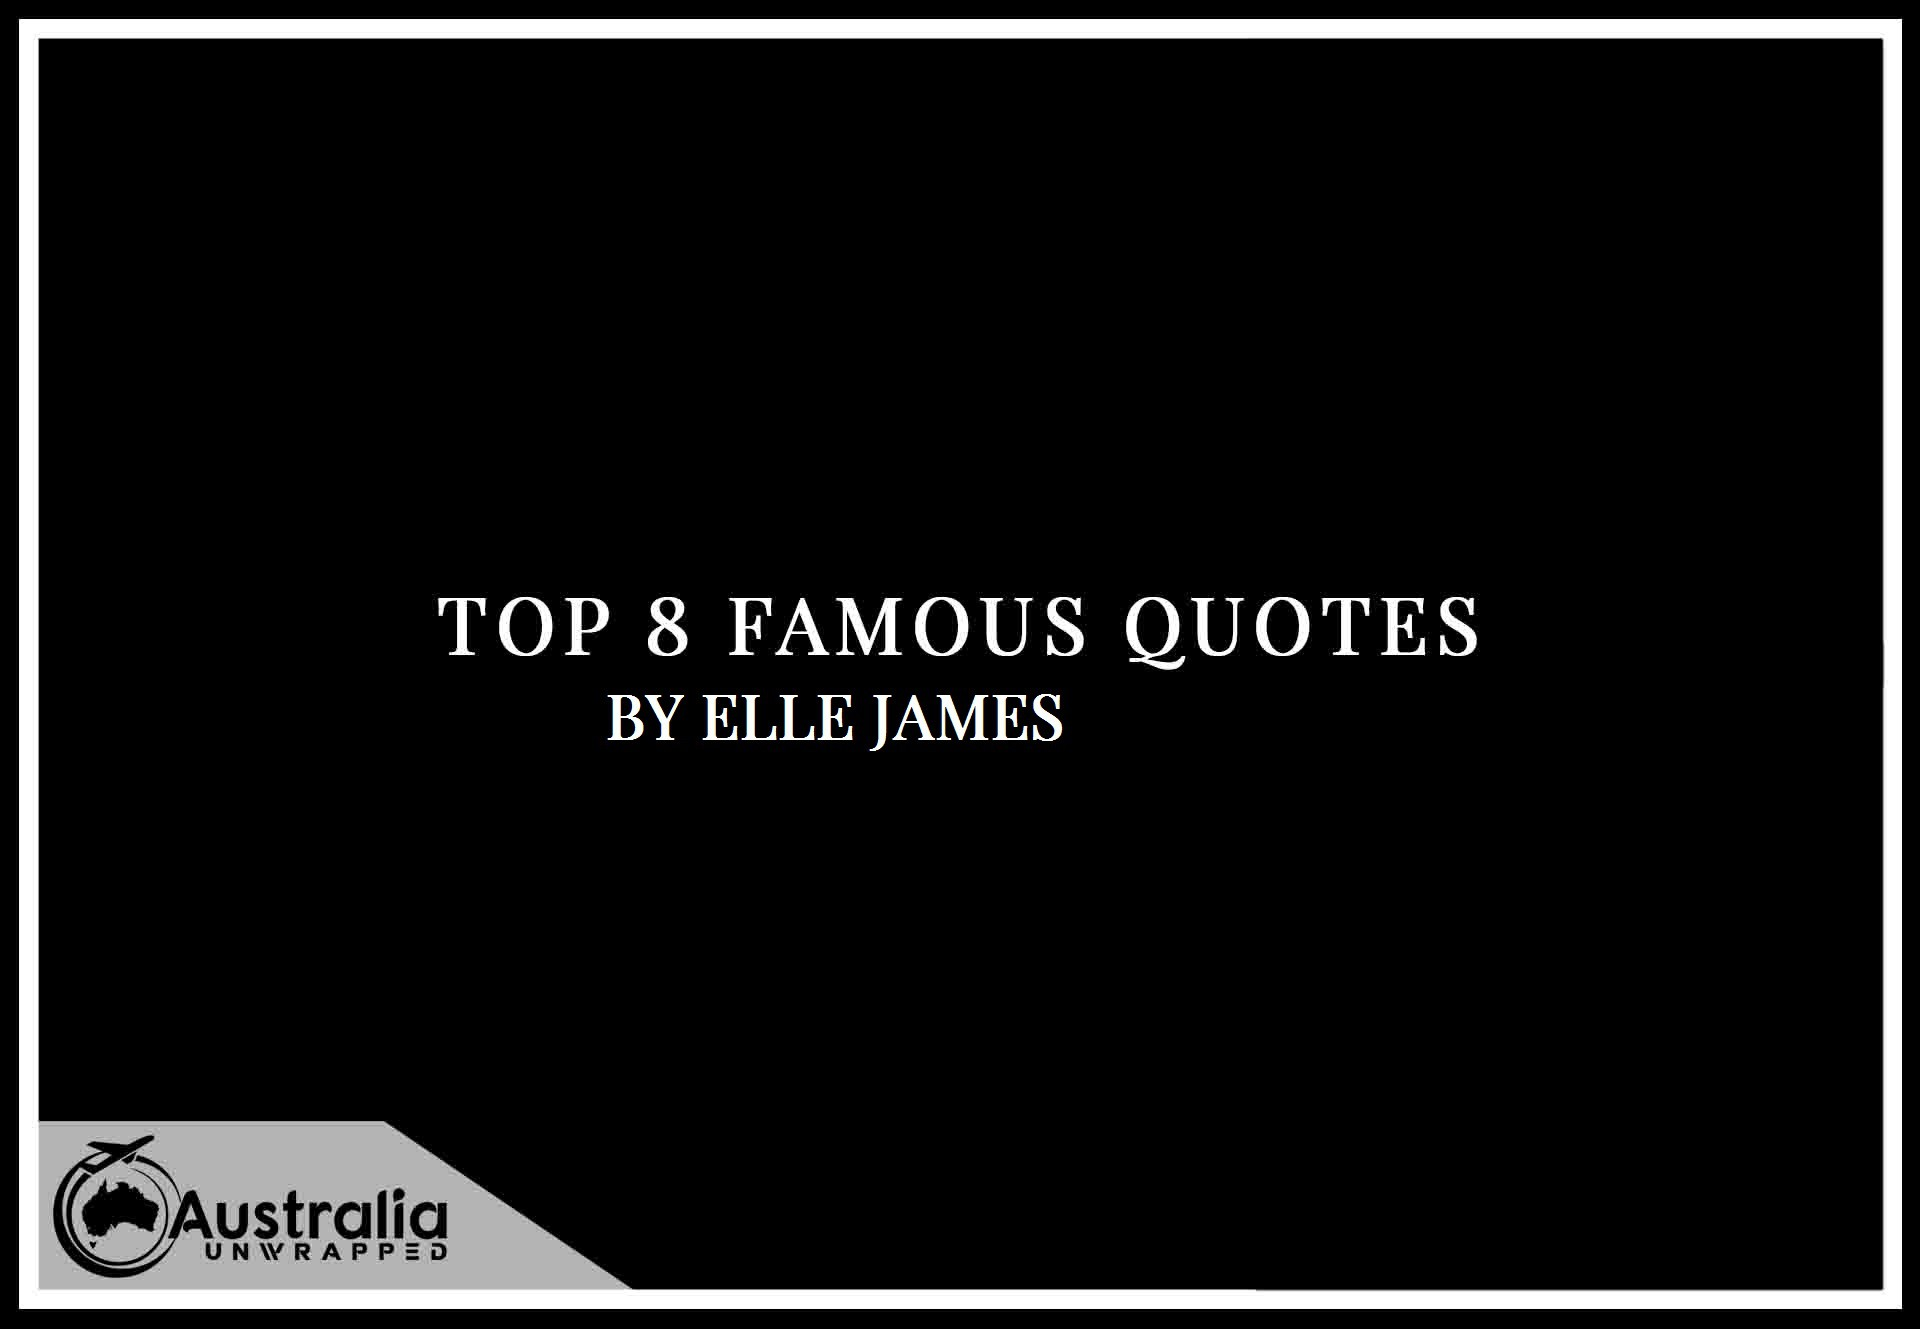 Elle James's Top 8 Popular and Famous Quotes